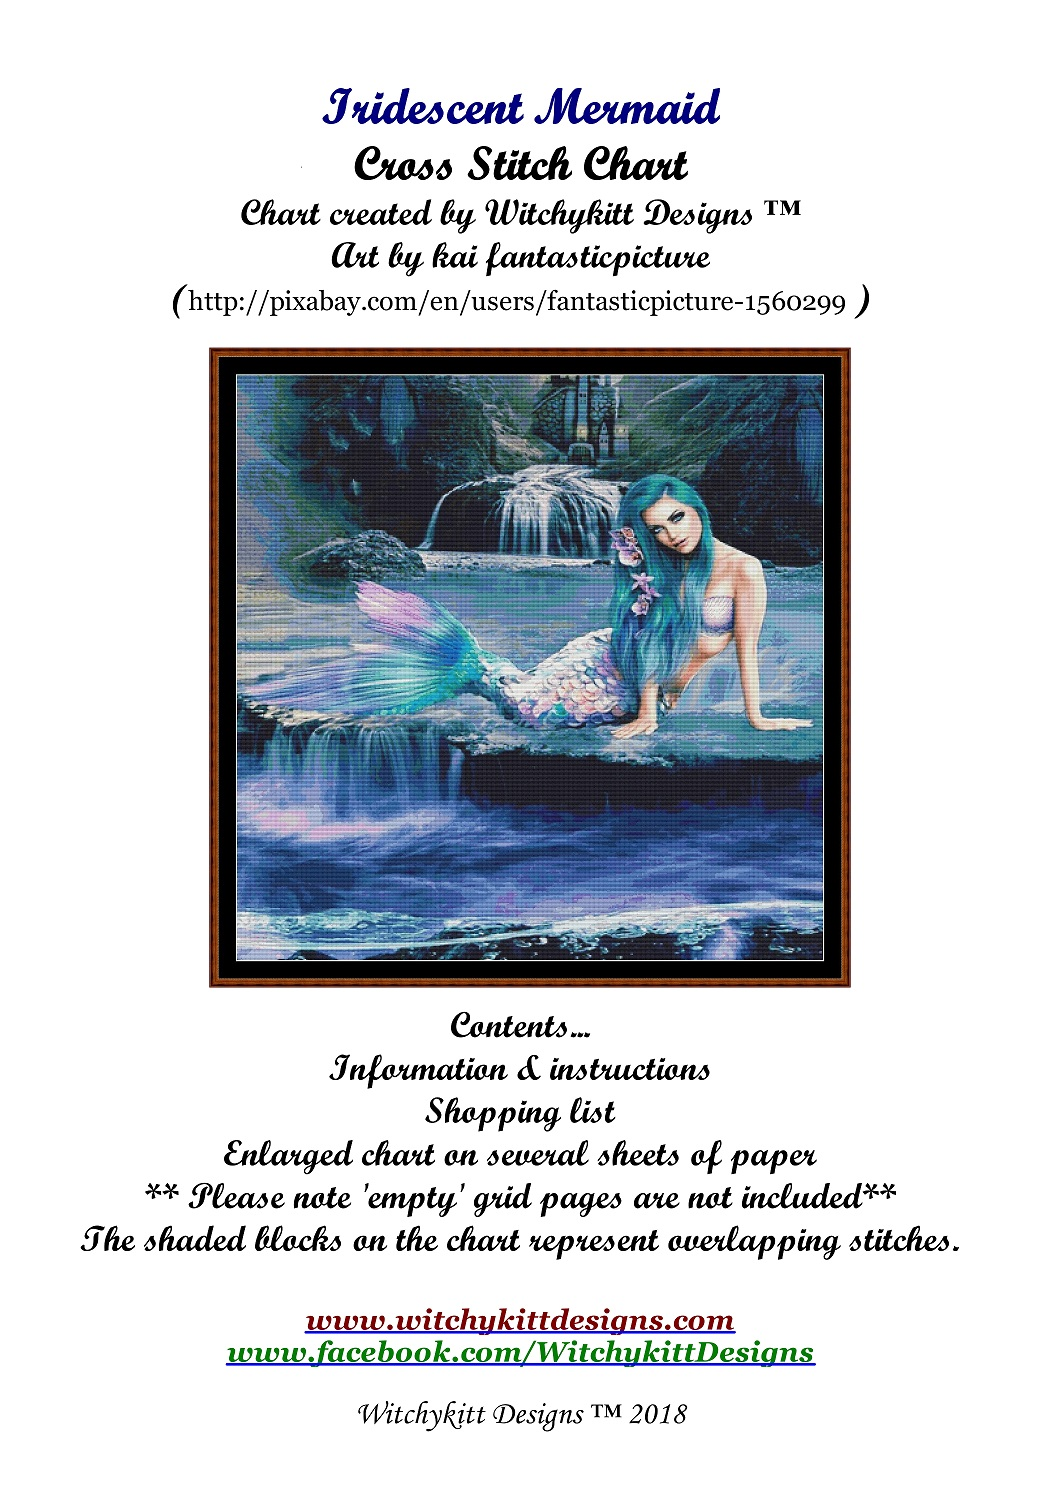 Iridescent Mermaid Cross Stitch